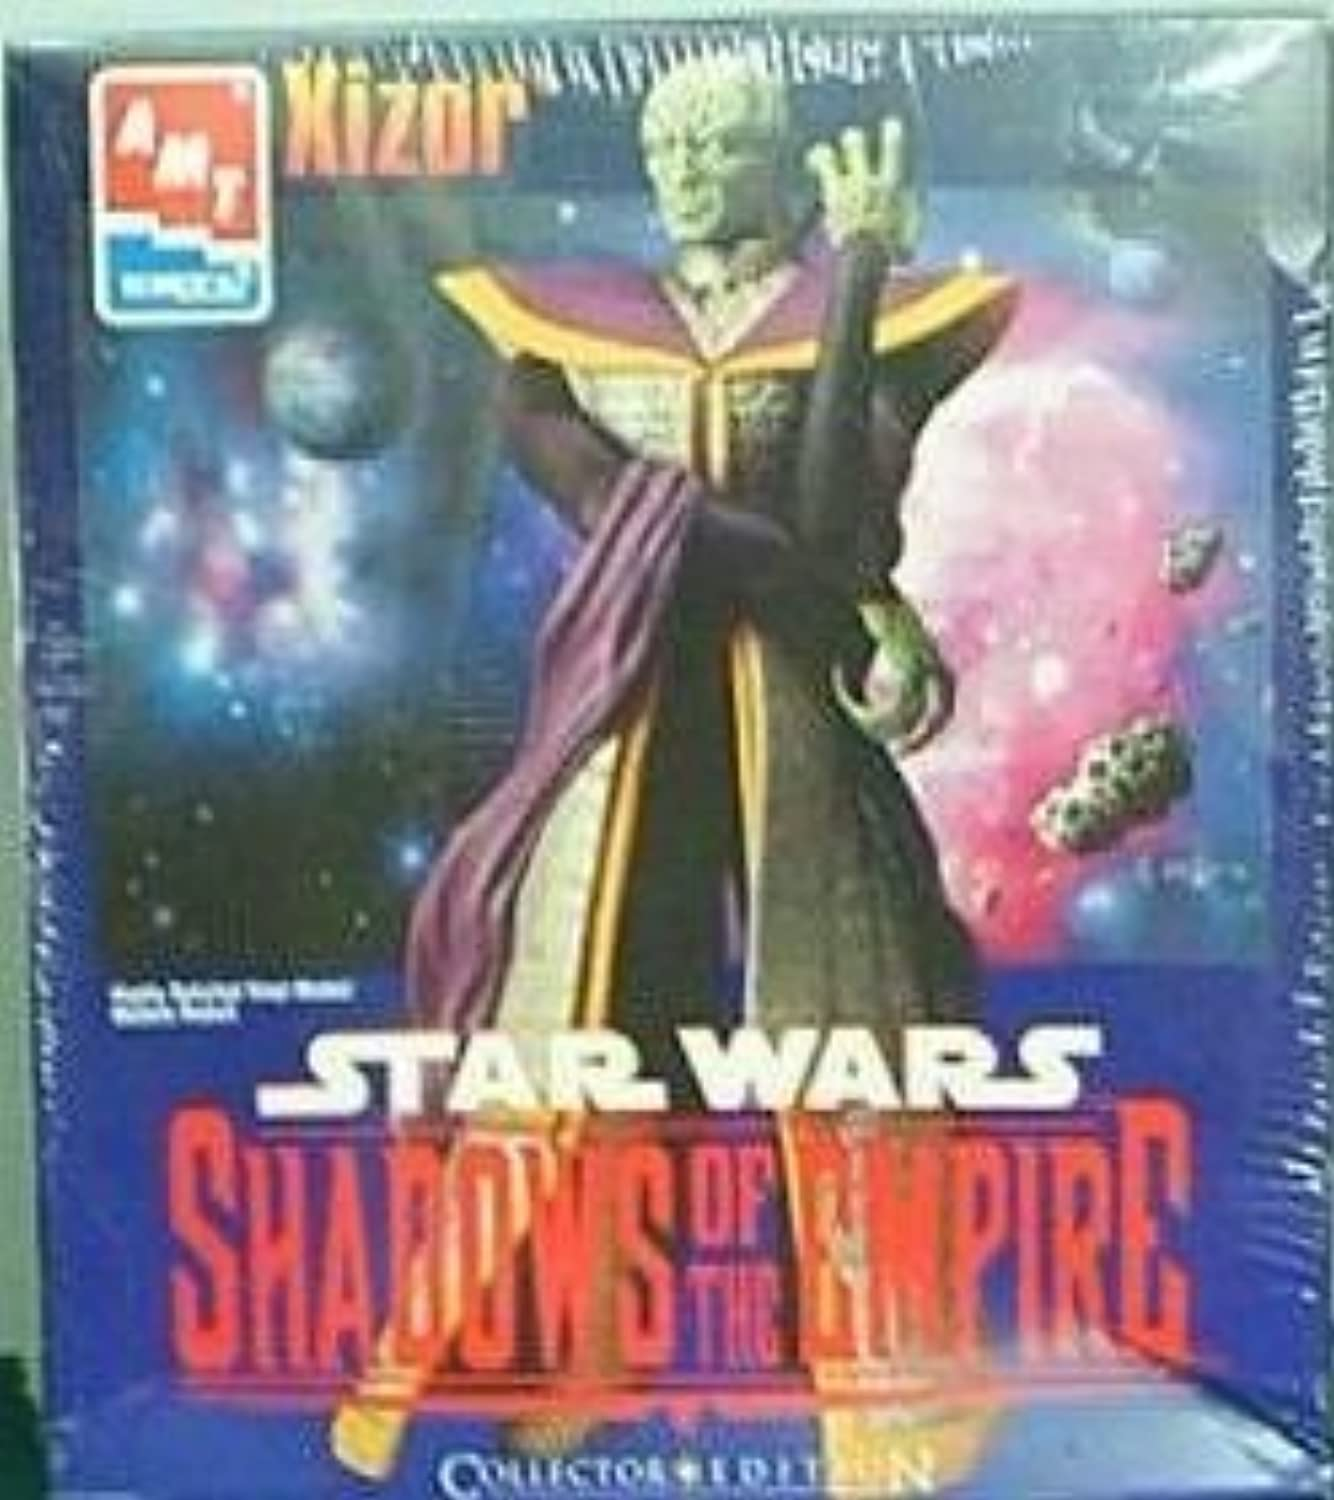 Star Wars Shadow of The Empire xizor Highly Detailed Vinyl